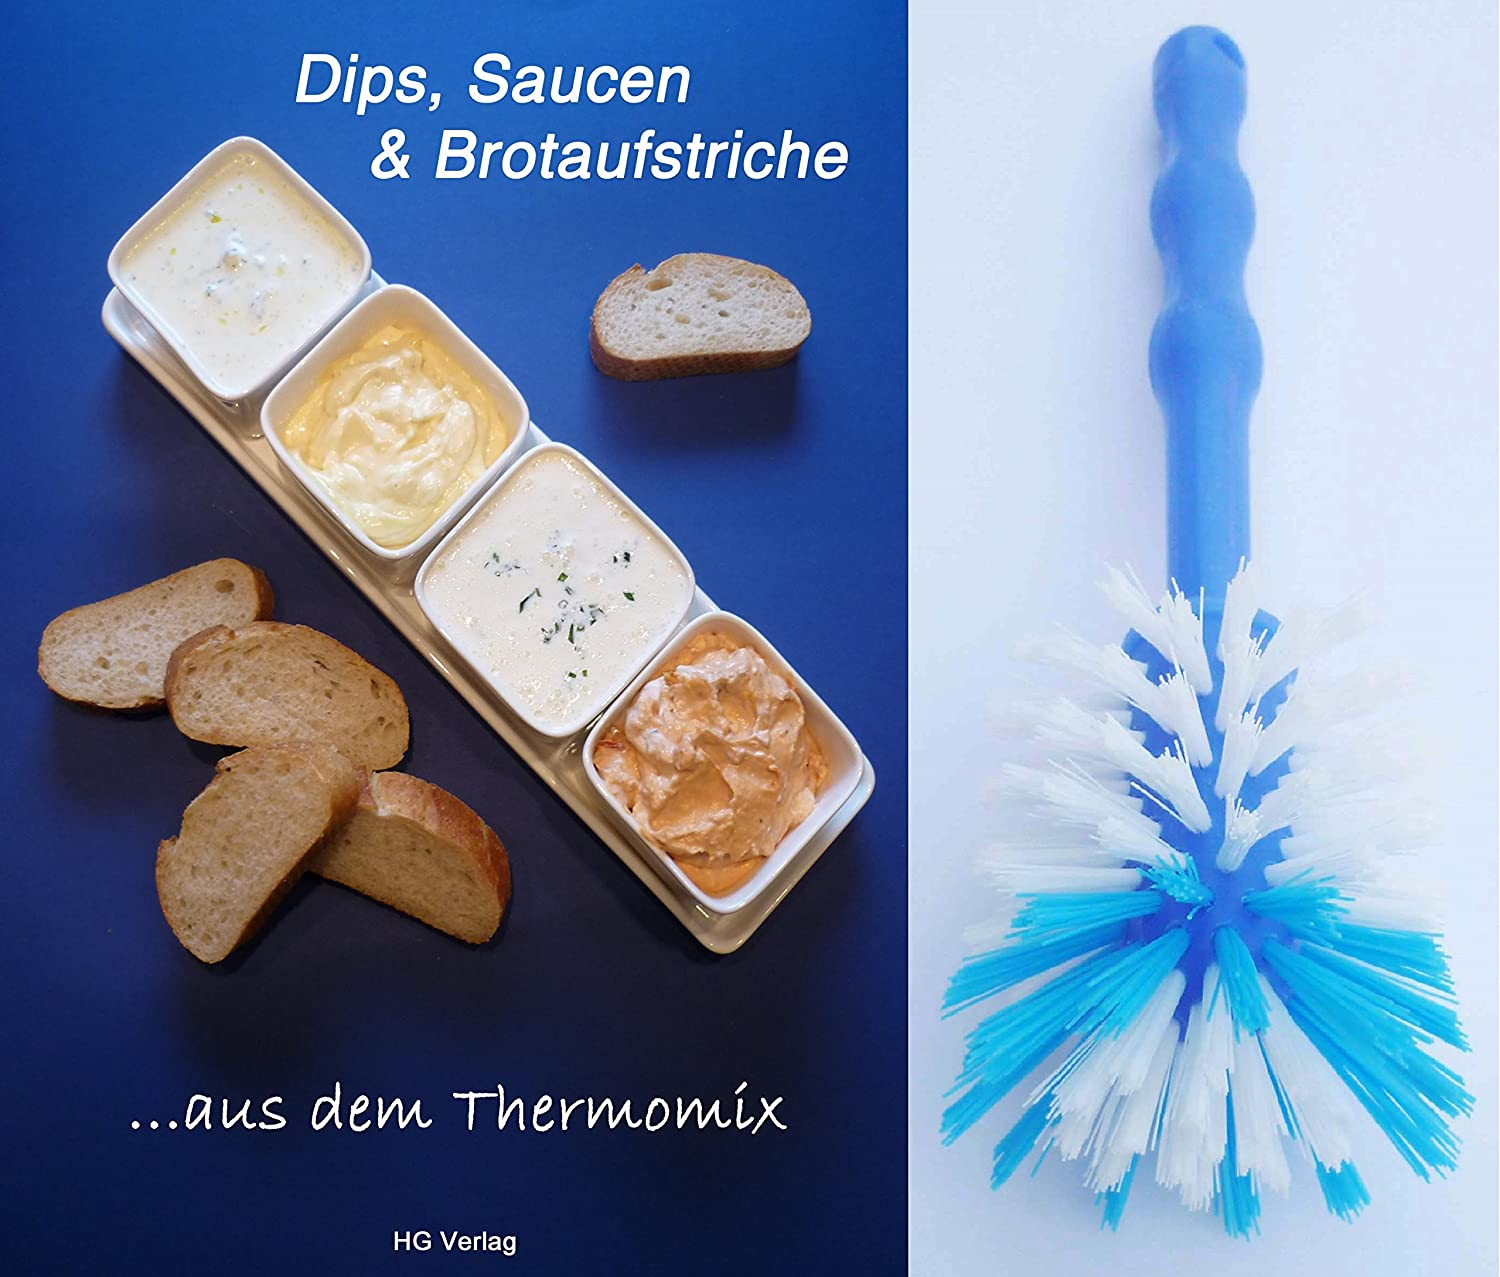 Set-unidades, salsas & pastas ... De la Thermomix + cepillo TM21 TM31 TM5: Amazon.es